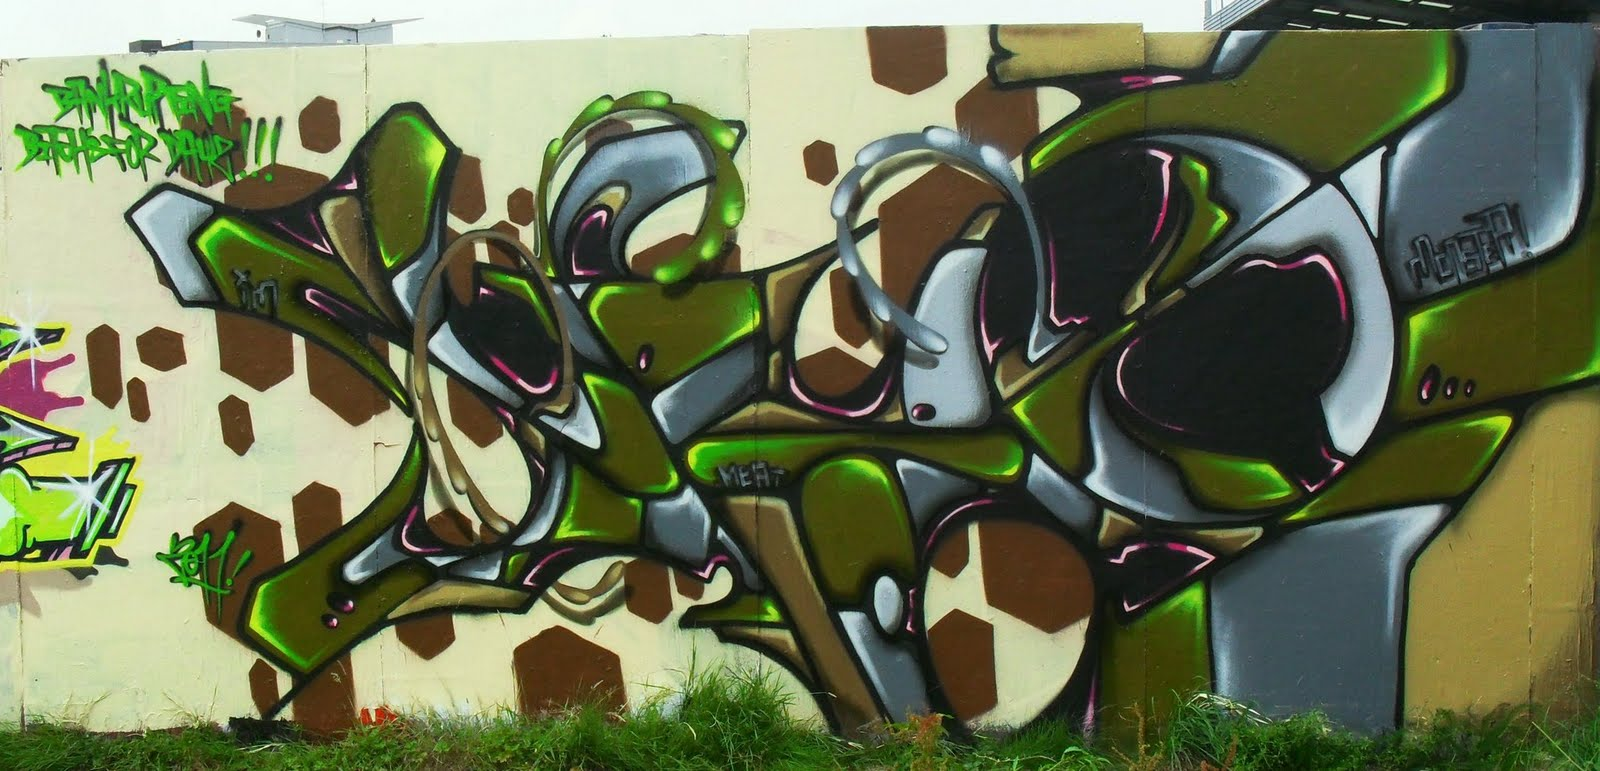 Monster Colors Graffiti Blog Spray Paint Cans Street Art Tags Taggging Pen Graff Blog Gesa